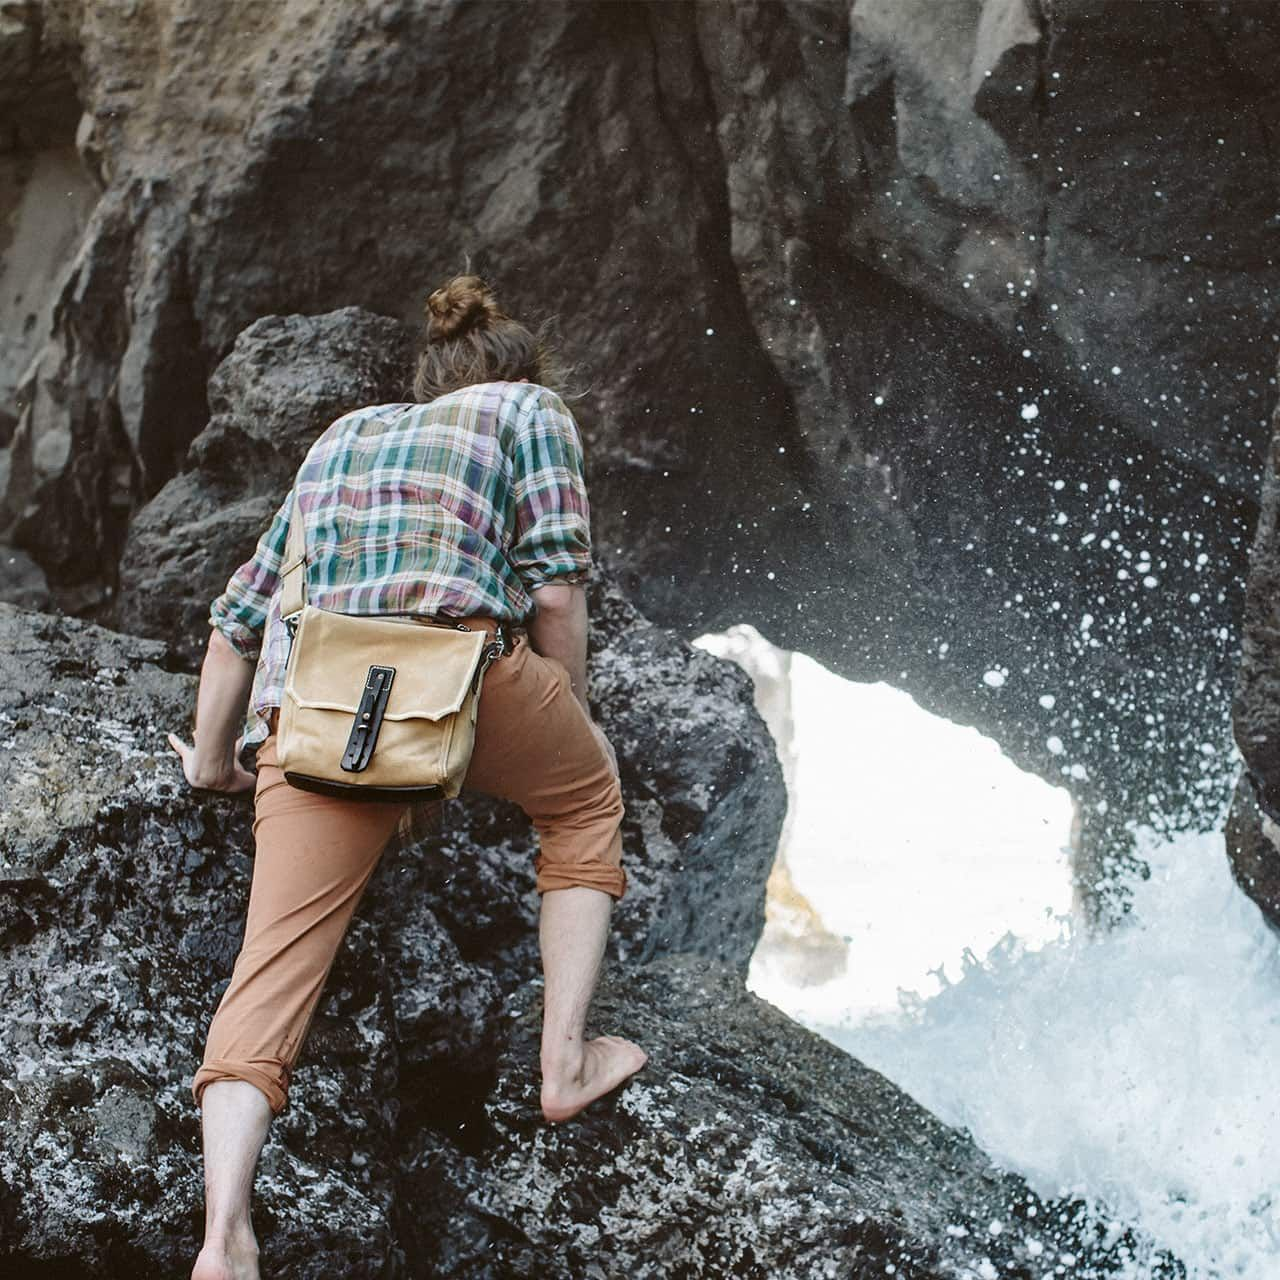 Indiana Gear Bag in Sand Worn CrossBody to the Rear on a Man Climbing Watery Rocks